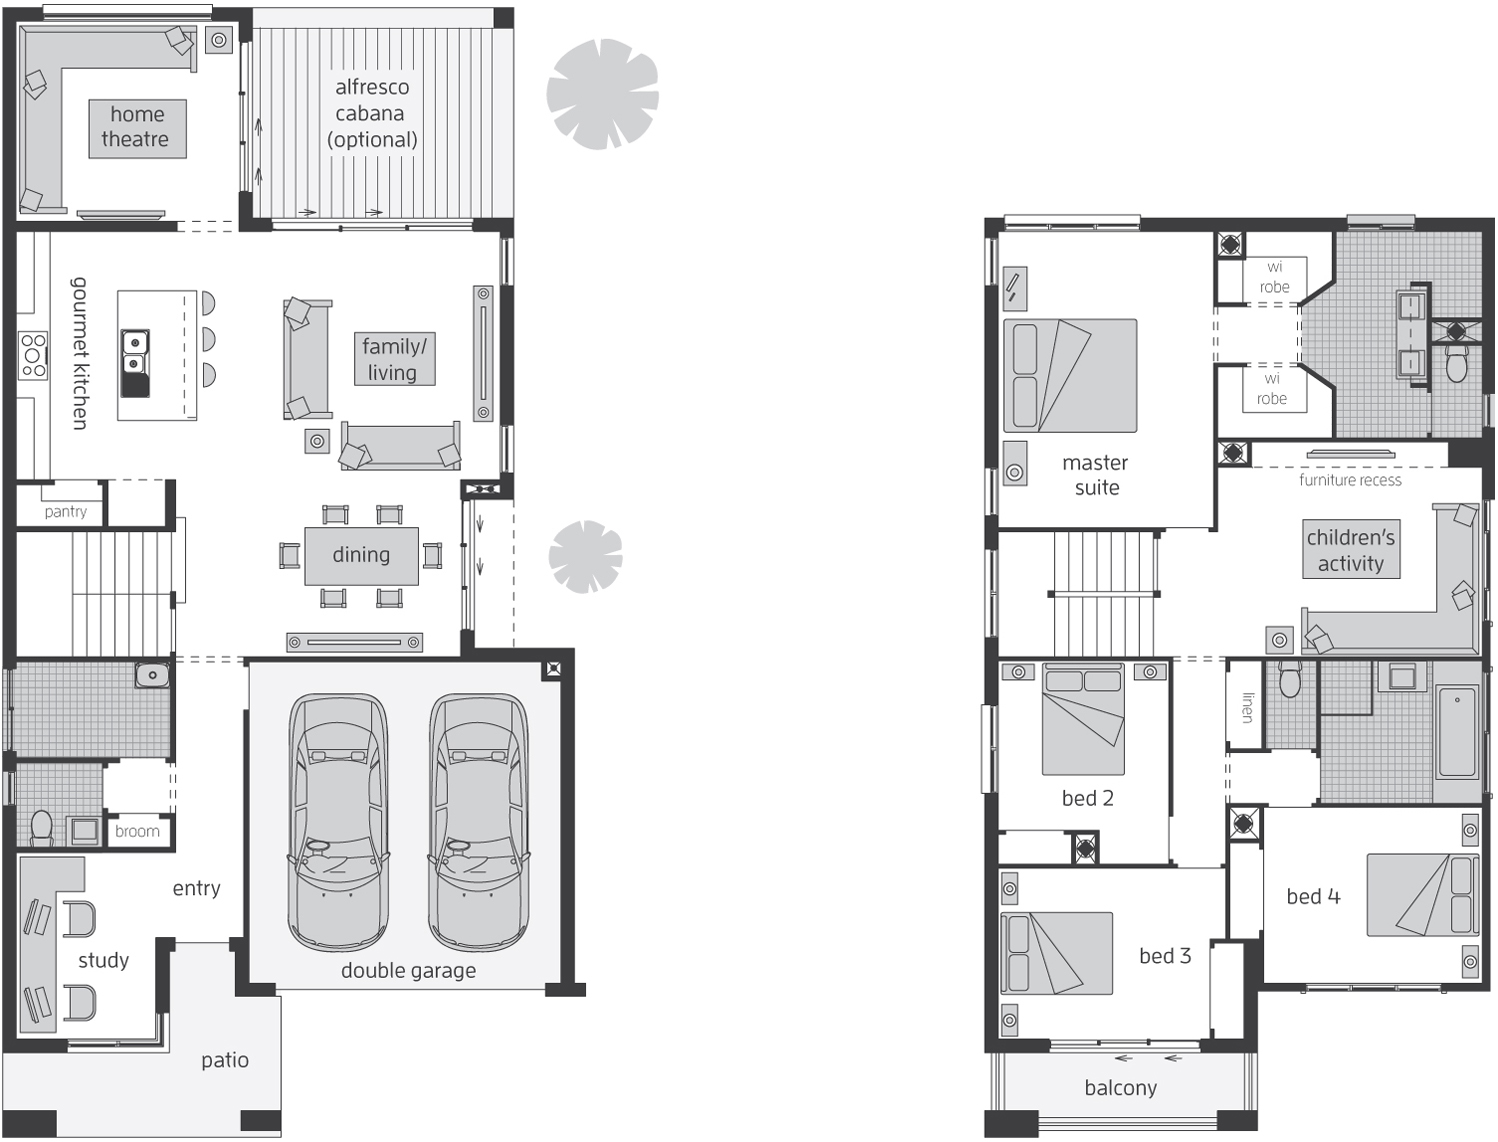 Floor Plan - Edenvale 32 Luxury Two Storey Home - McDonald Jones